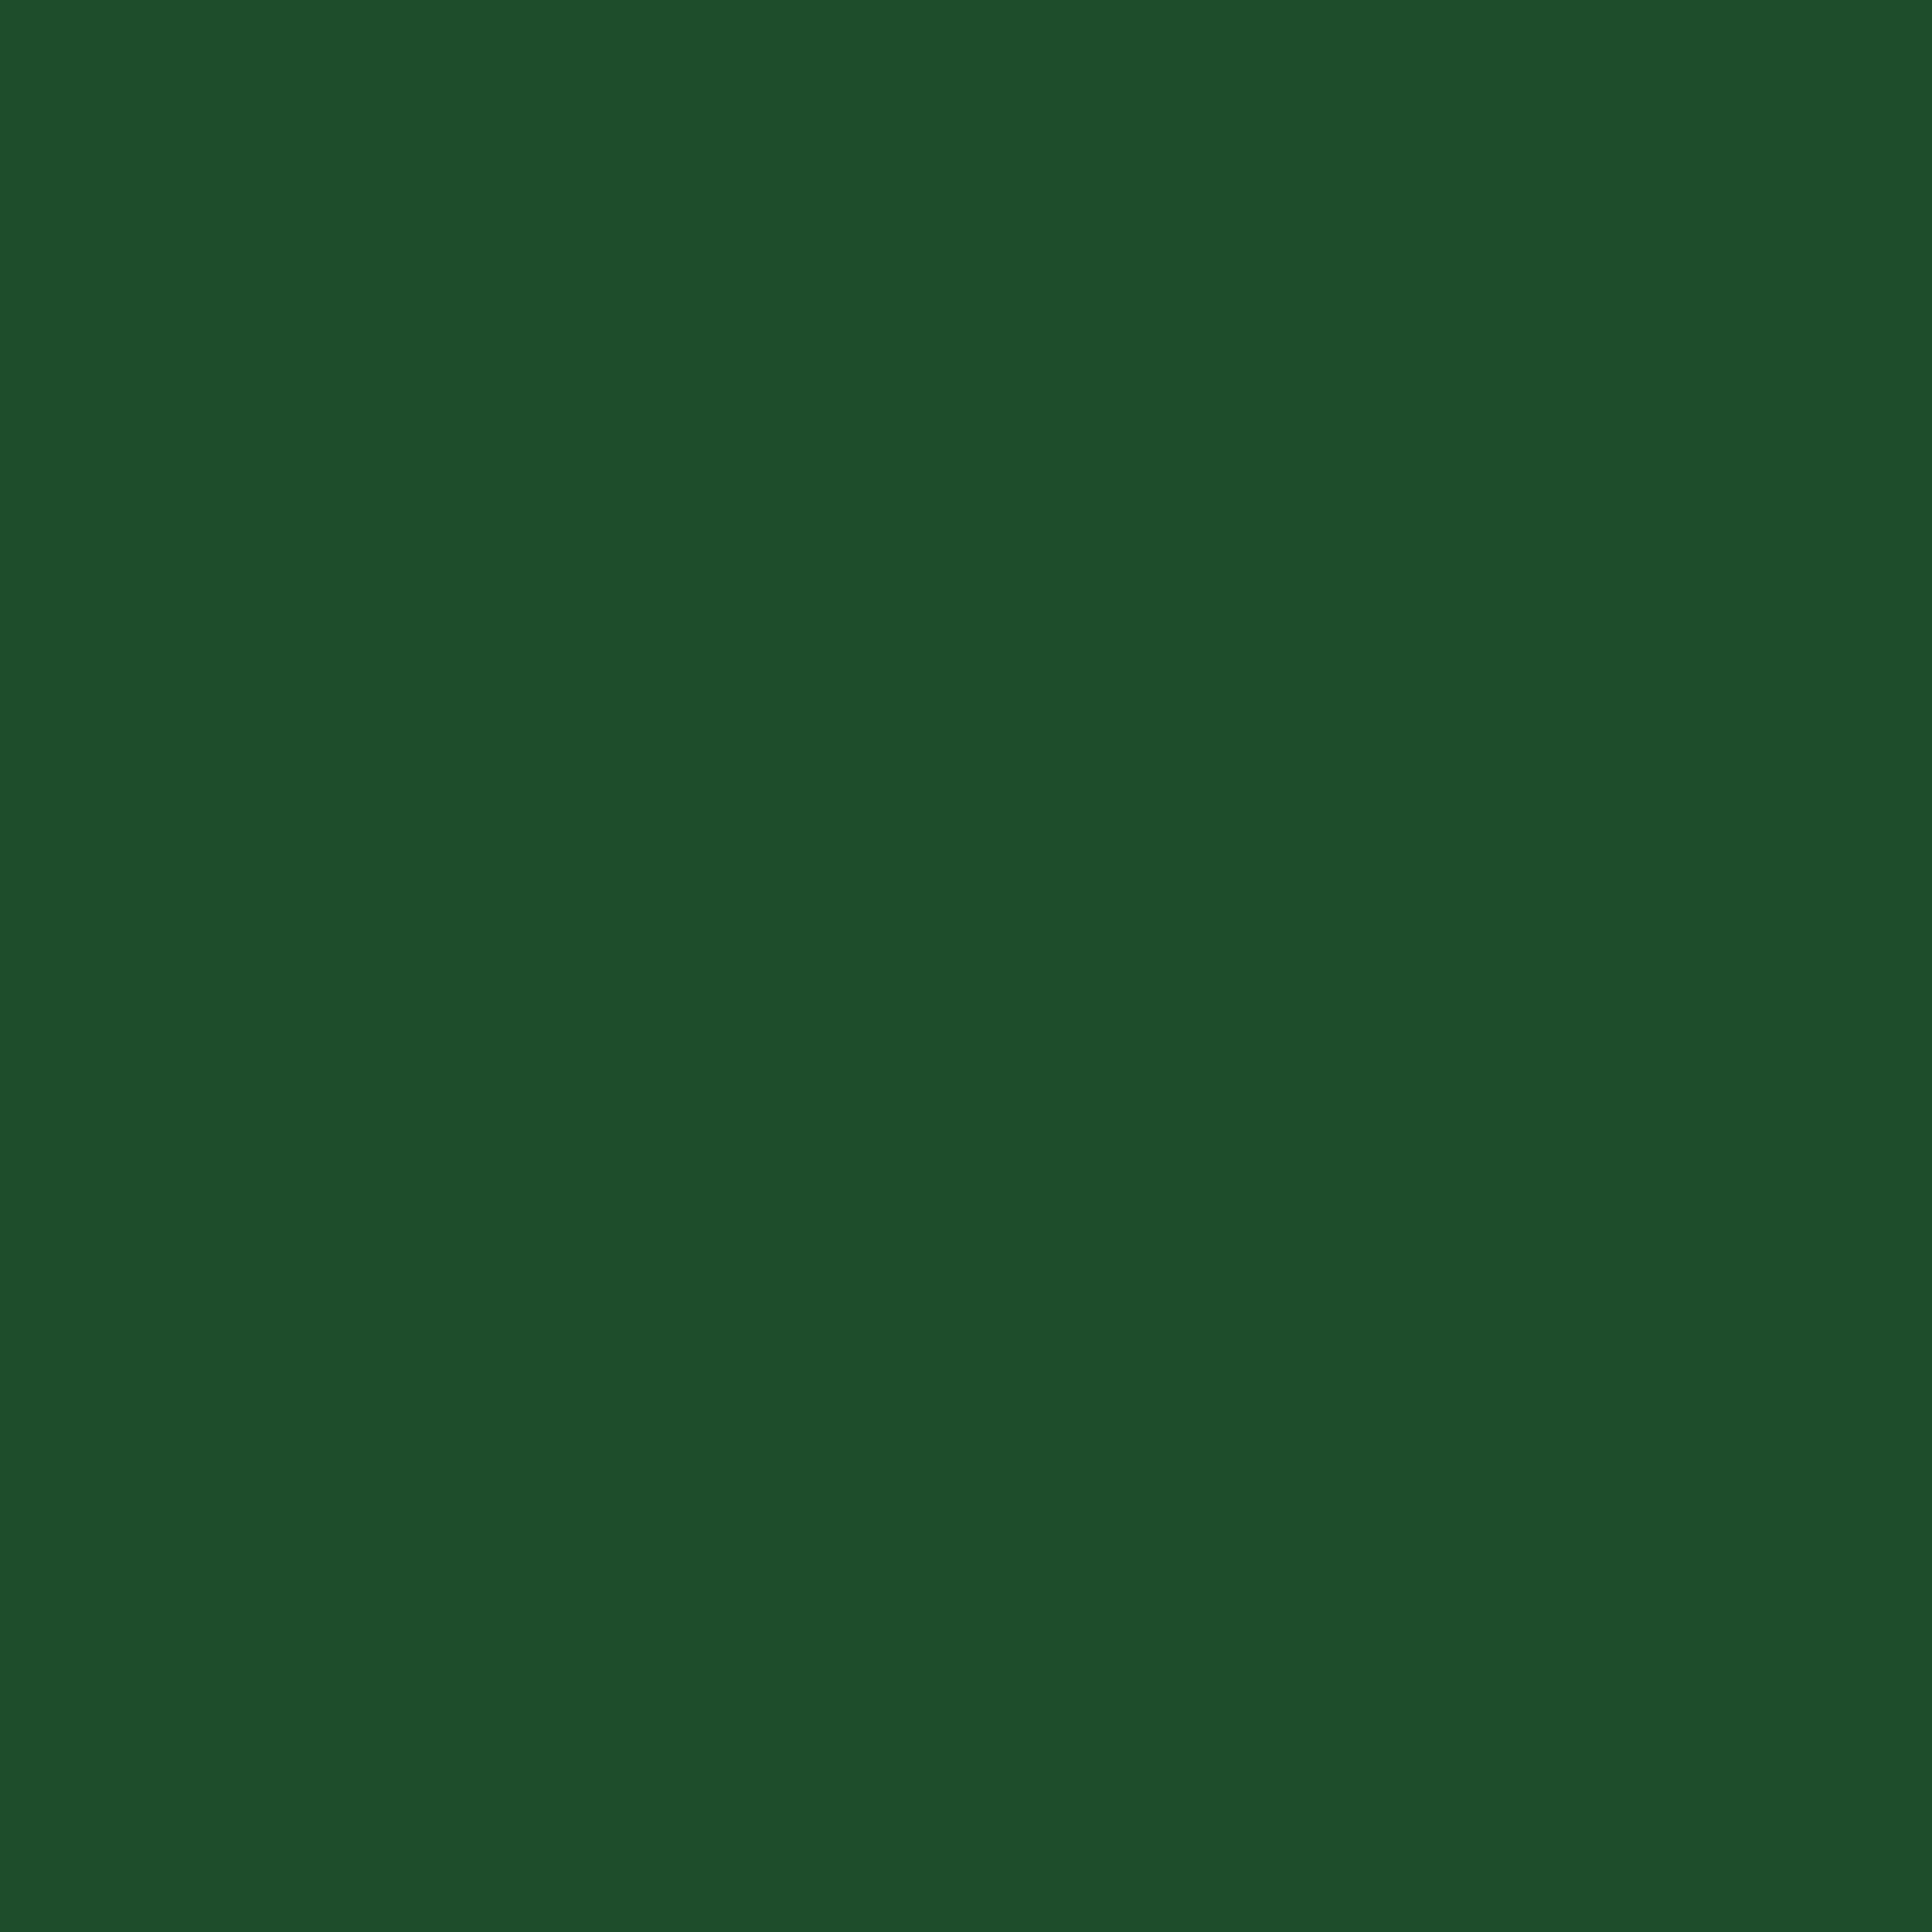 2048x2048 Cal Poly Green Solid Color Background